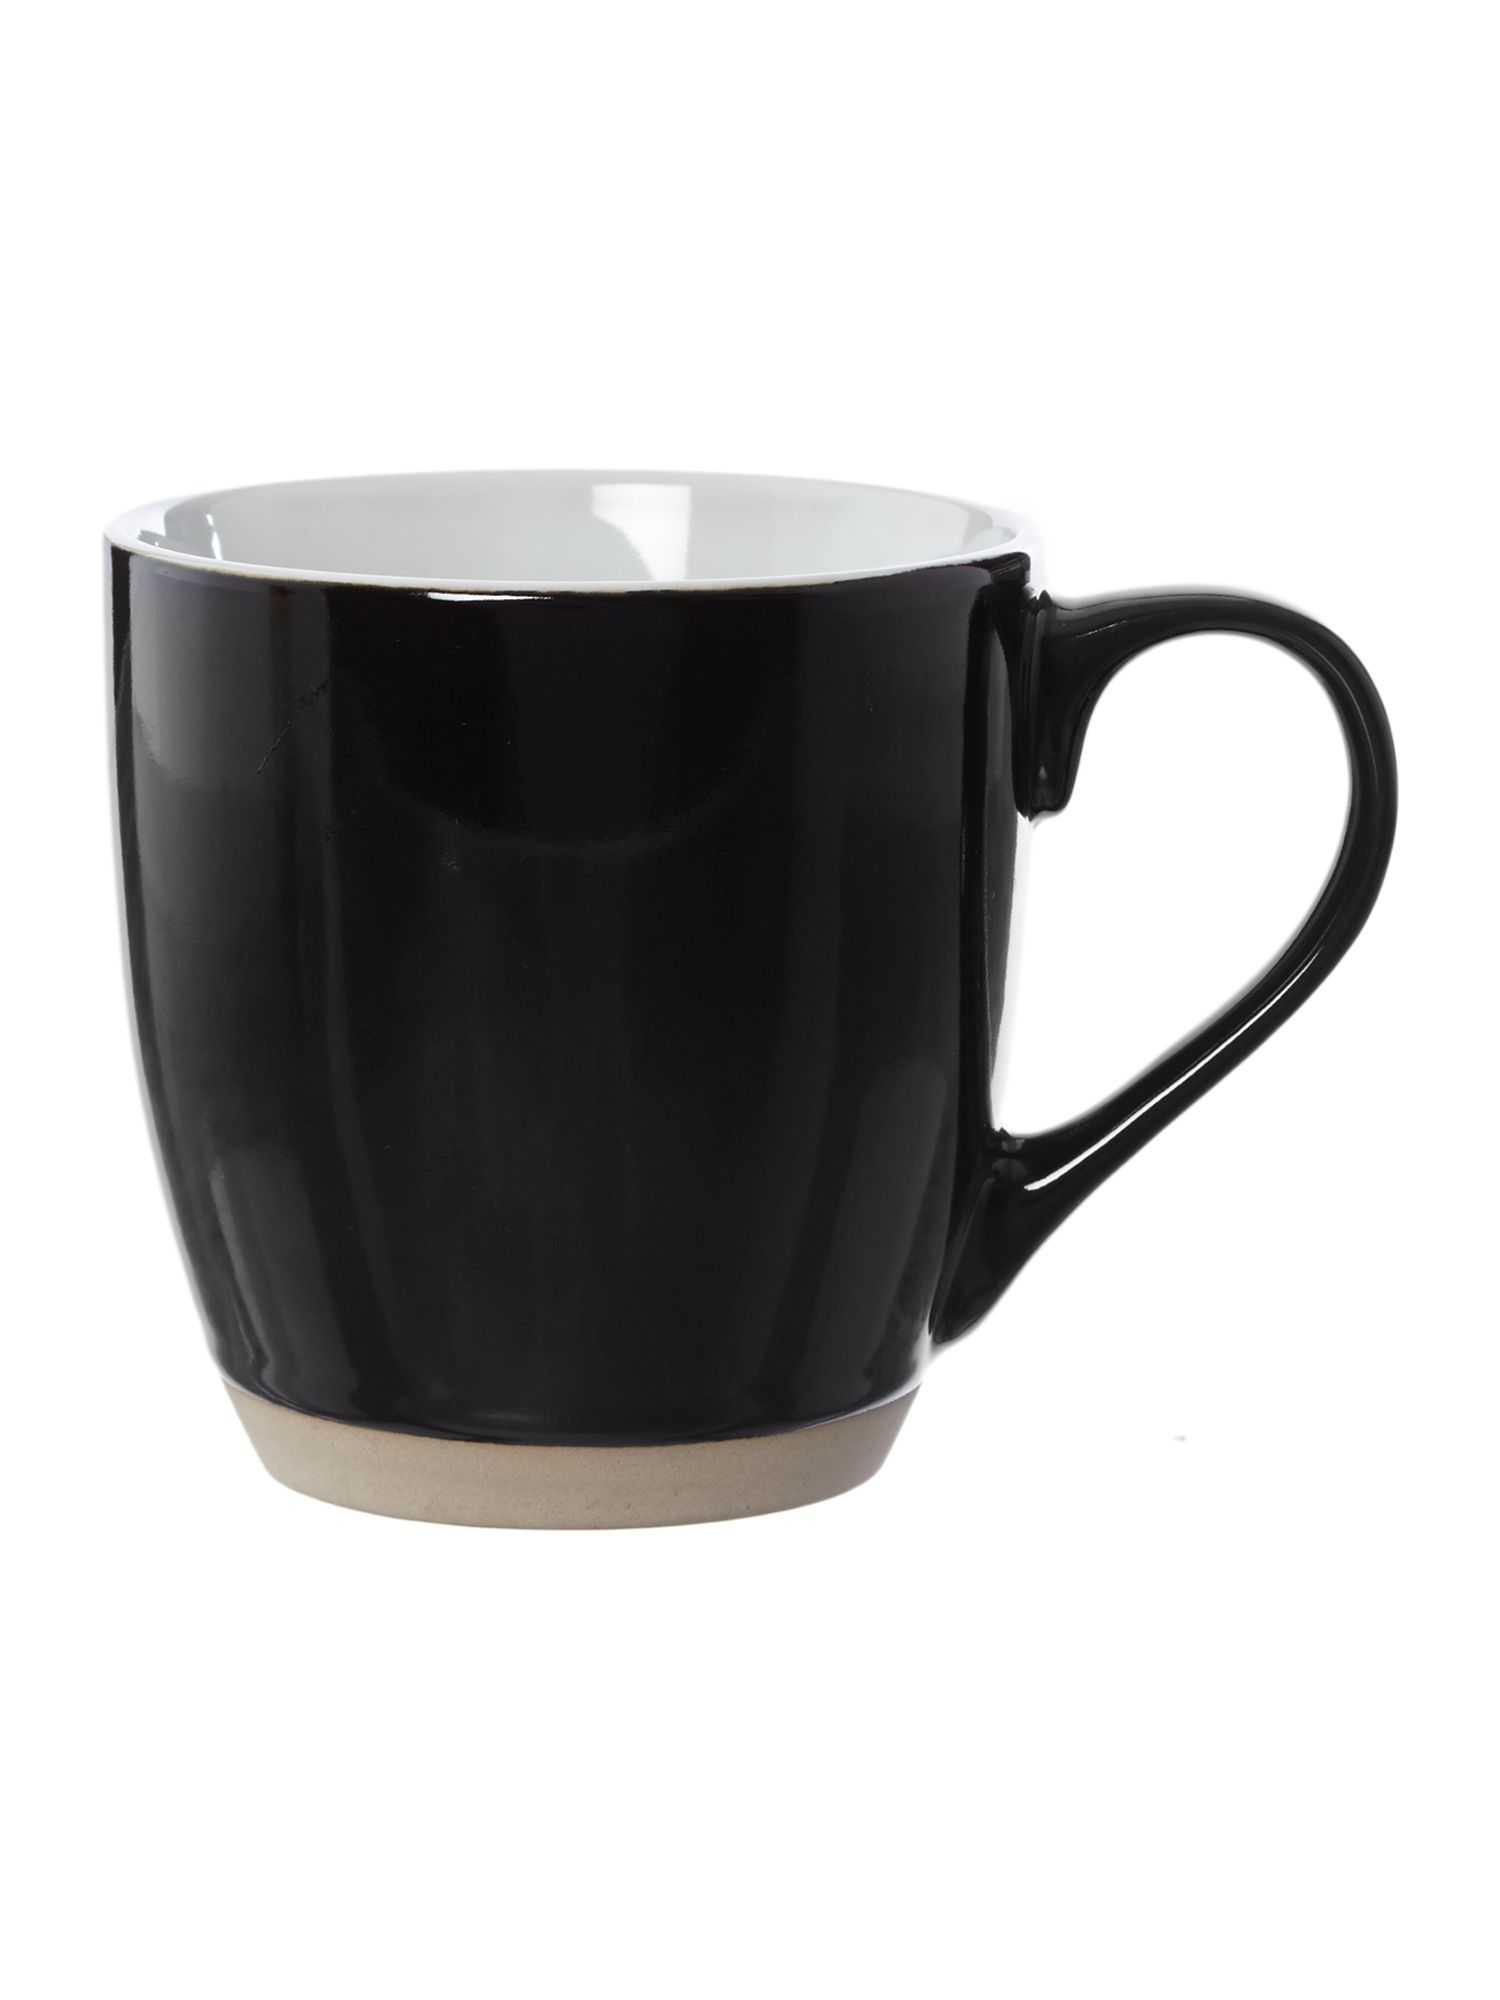 Ebony black mug